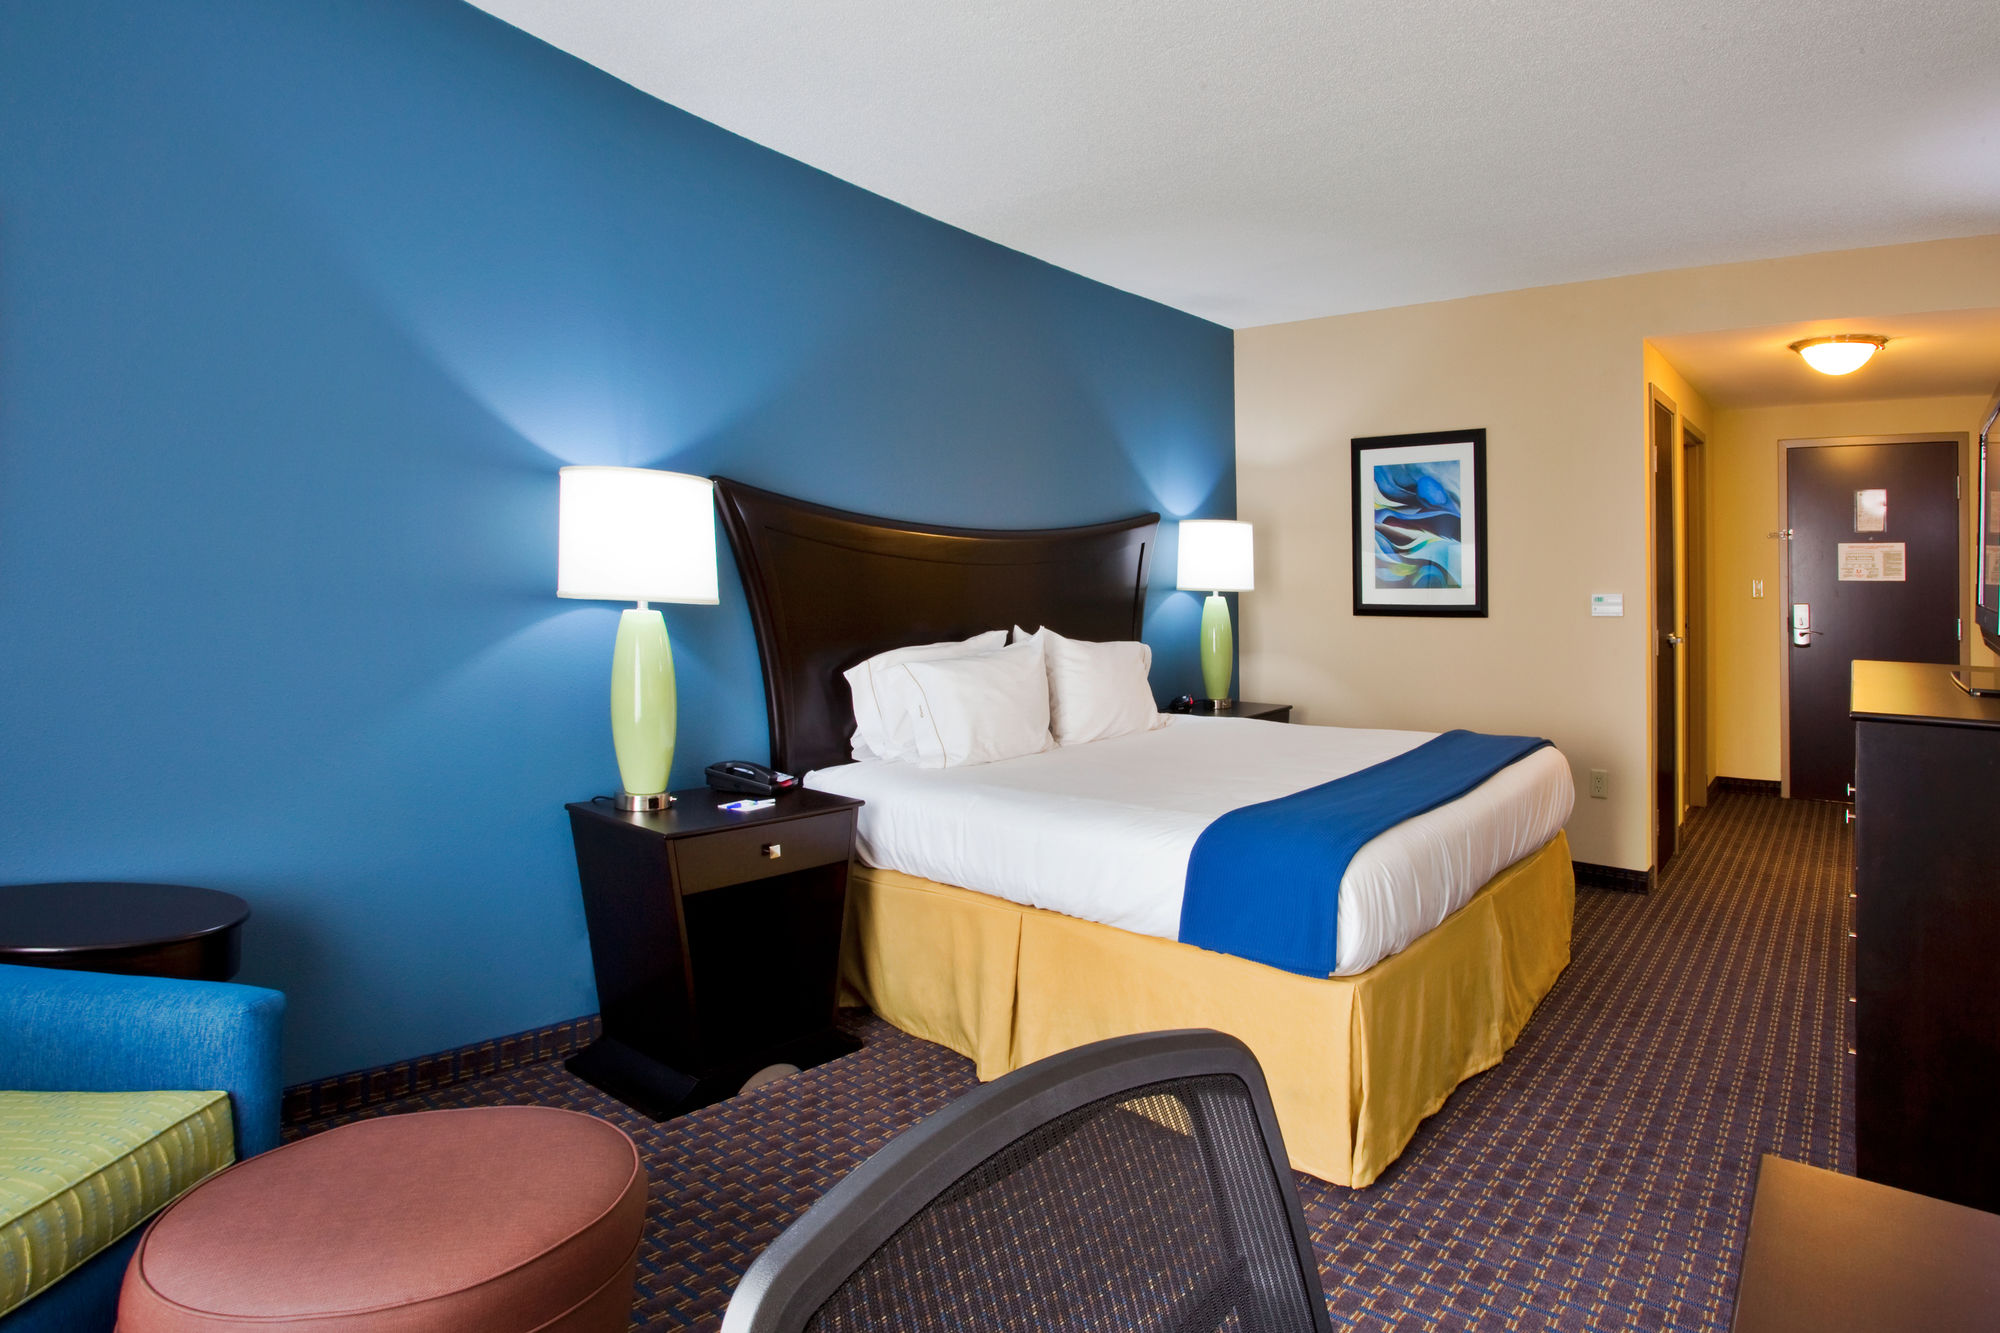 Holiday Inn Express Hotel & Suites Largo-Clearwater in Largo, FL